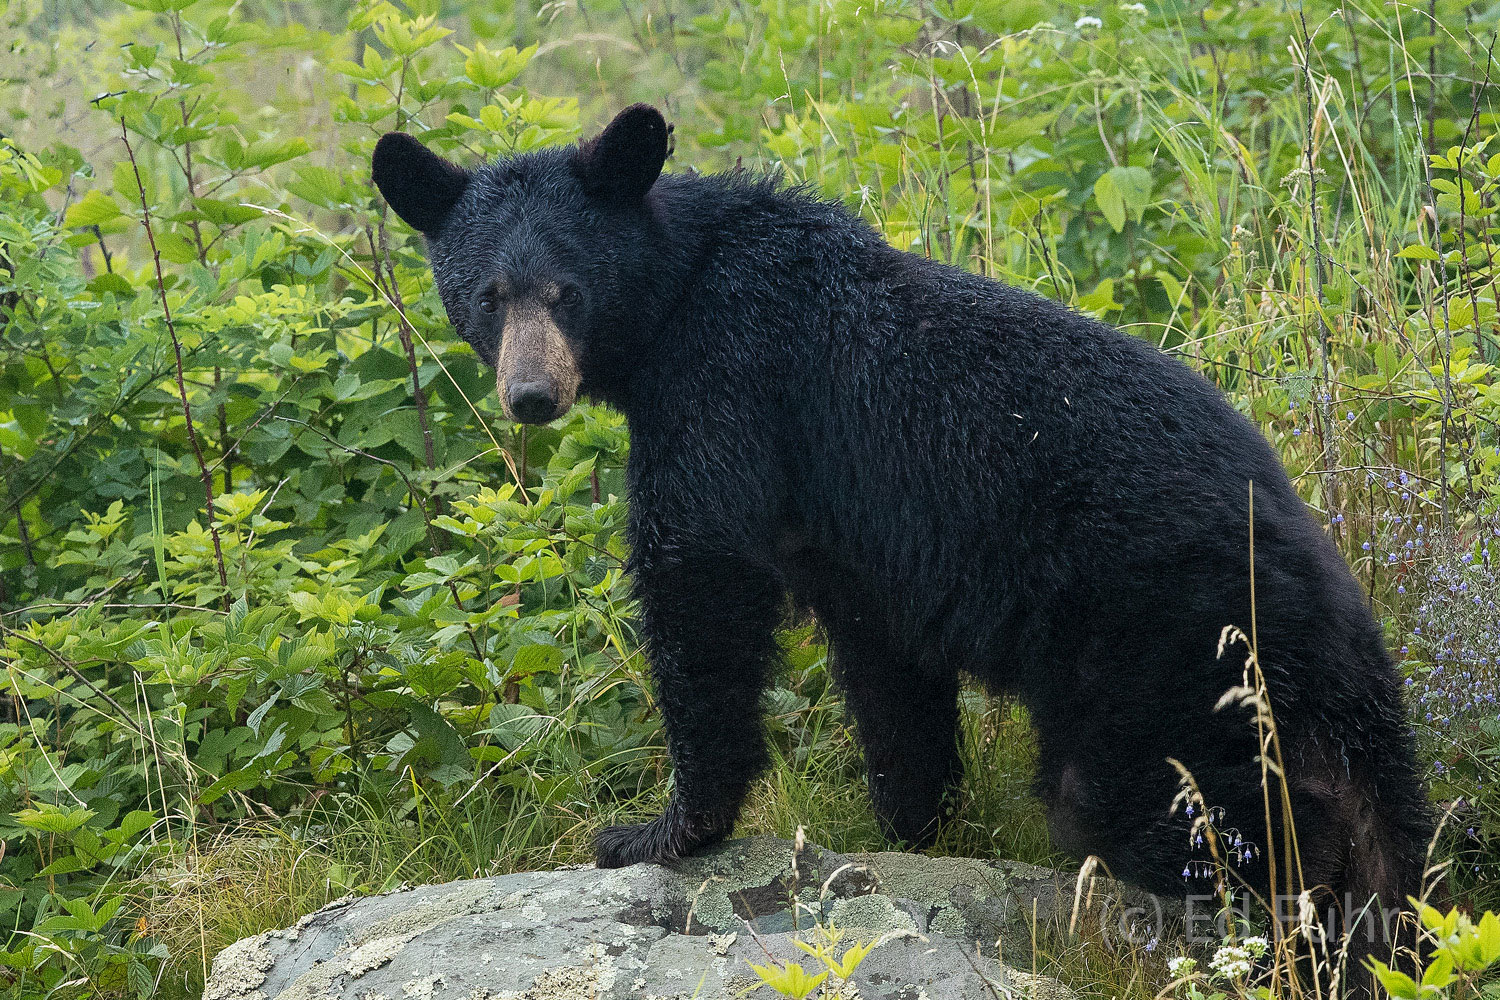 Shenandoah national park, image, photograph, black bear, big meadows, photo